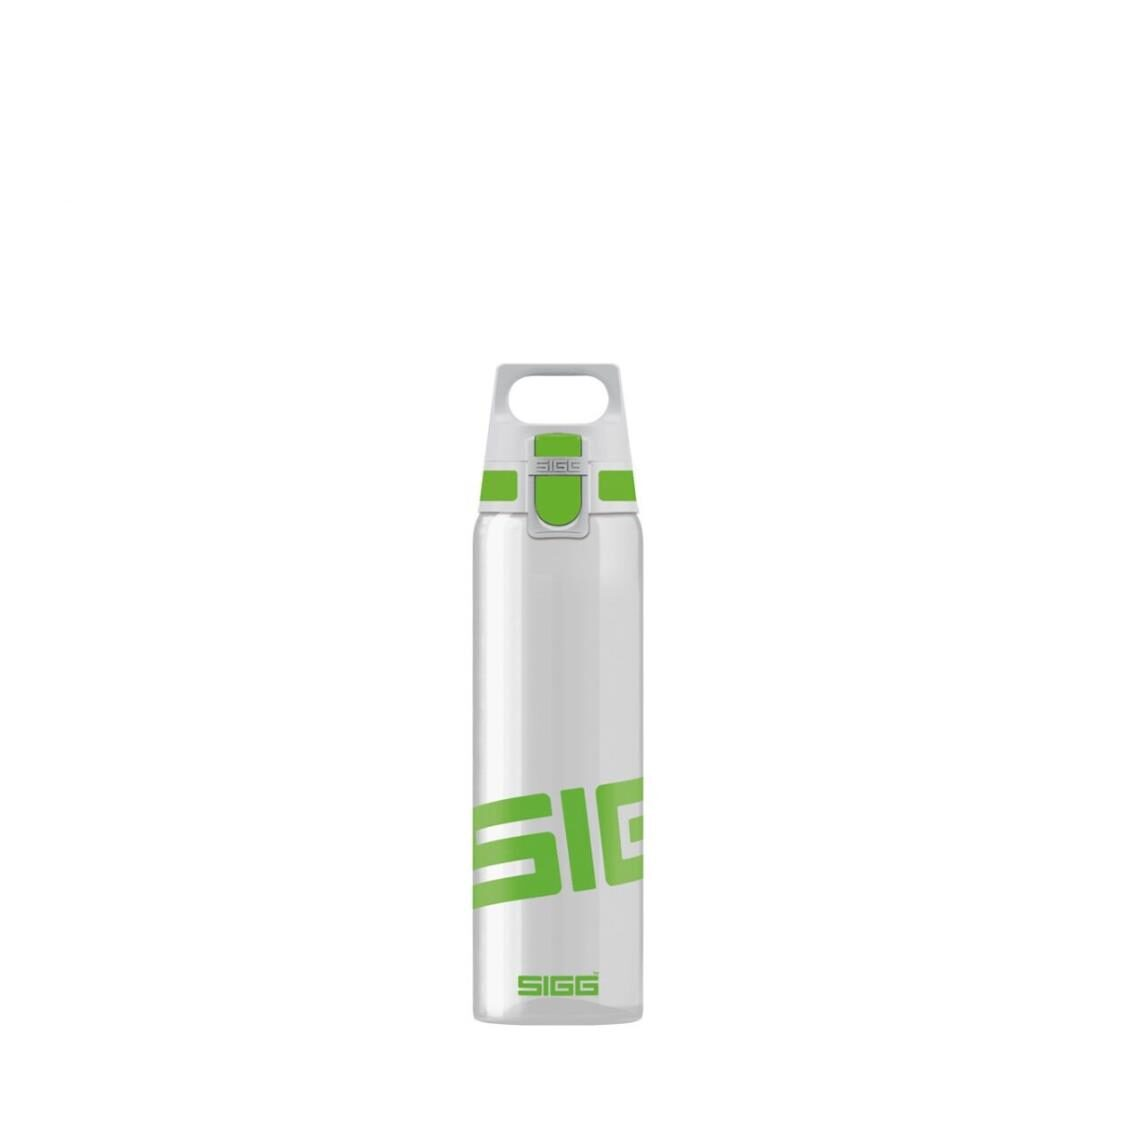 Sigg Total Clear One 750ml Water Bottle 863300  Green